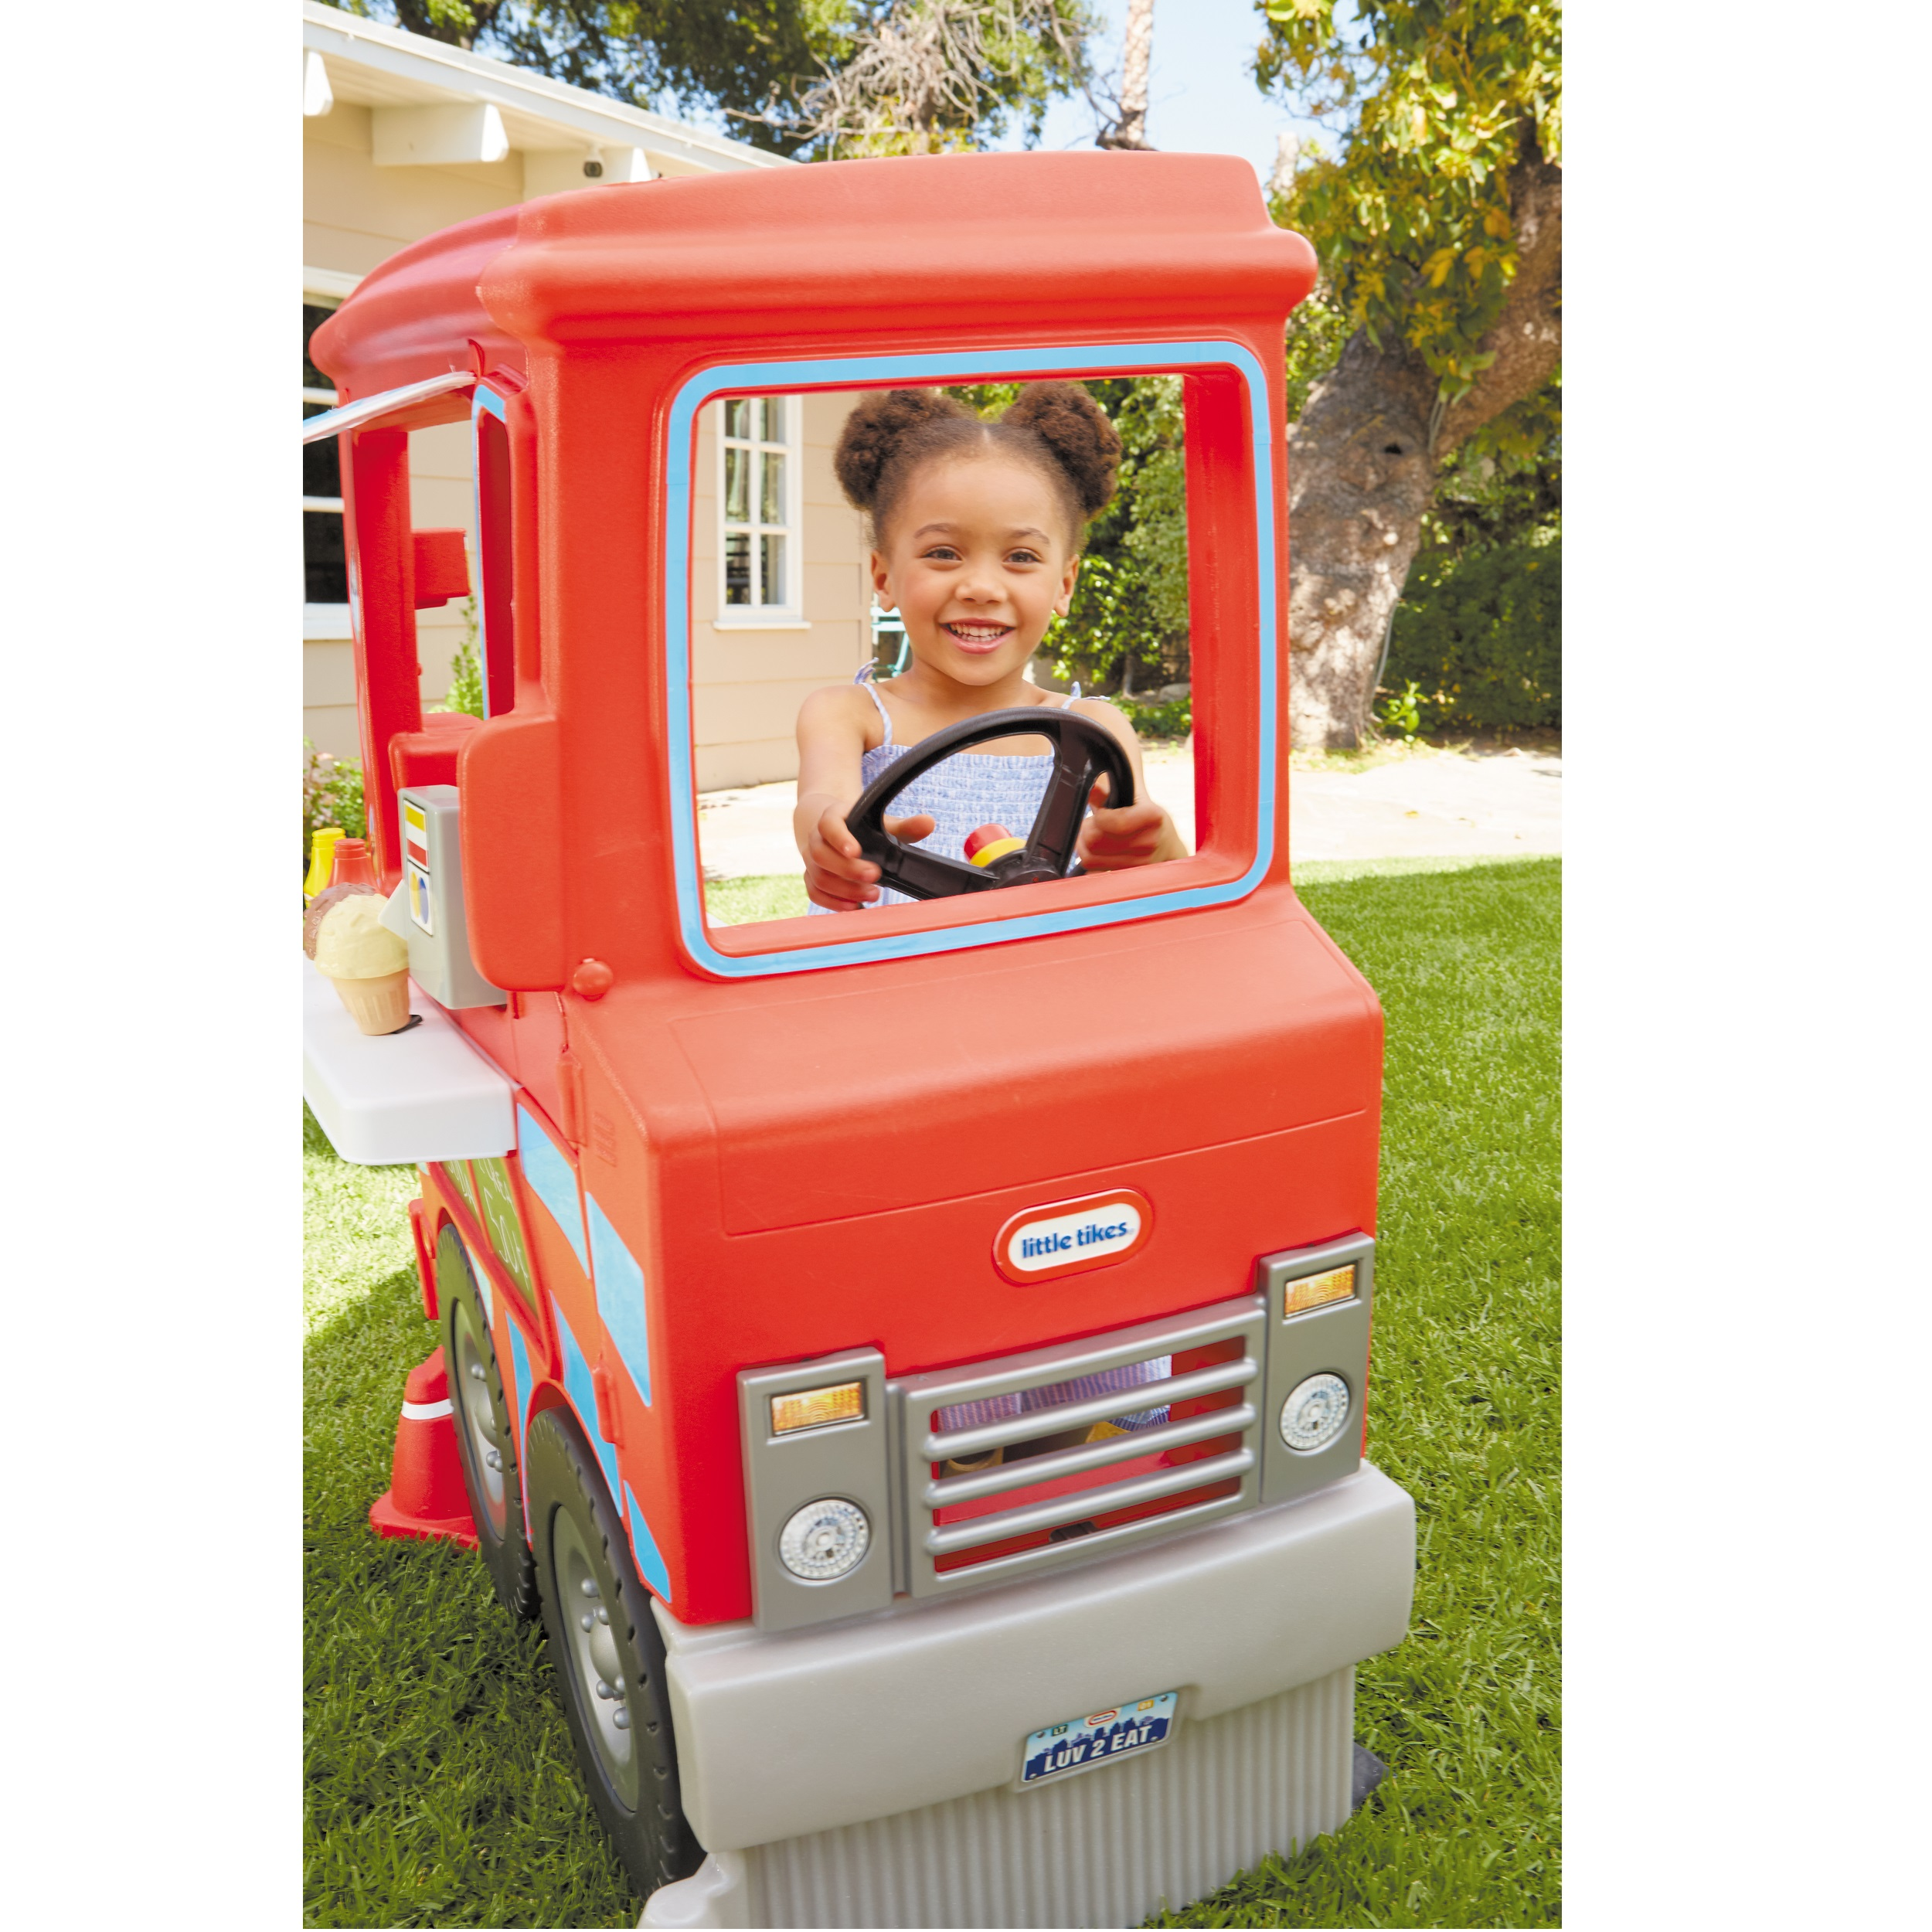 Little Tikes 2 In 1 Food Truck Play Kitchen With 20 Piece Accessory Play Set Walmart Com Walmart Com